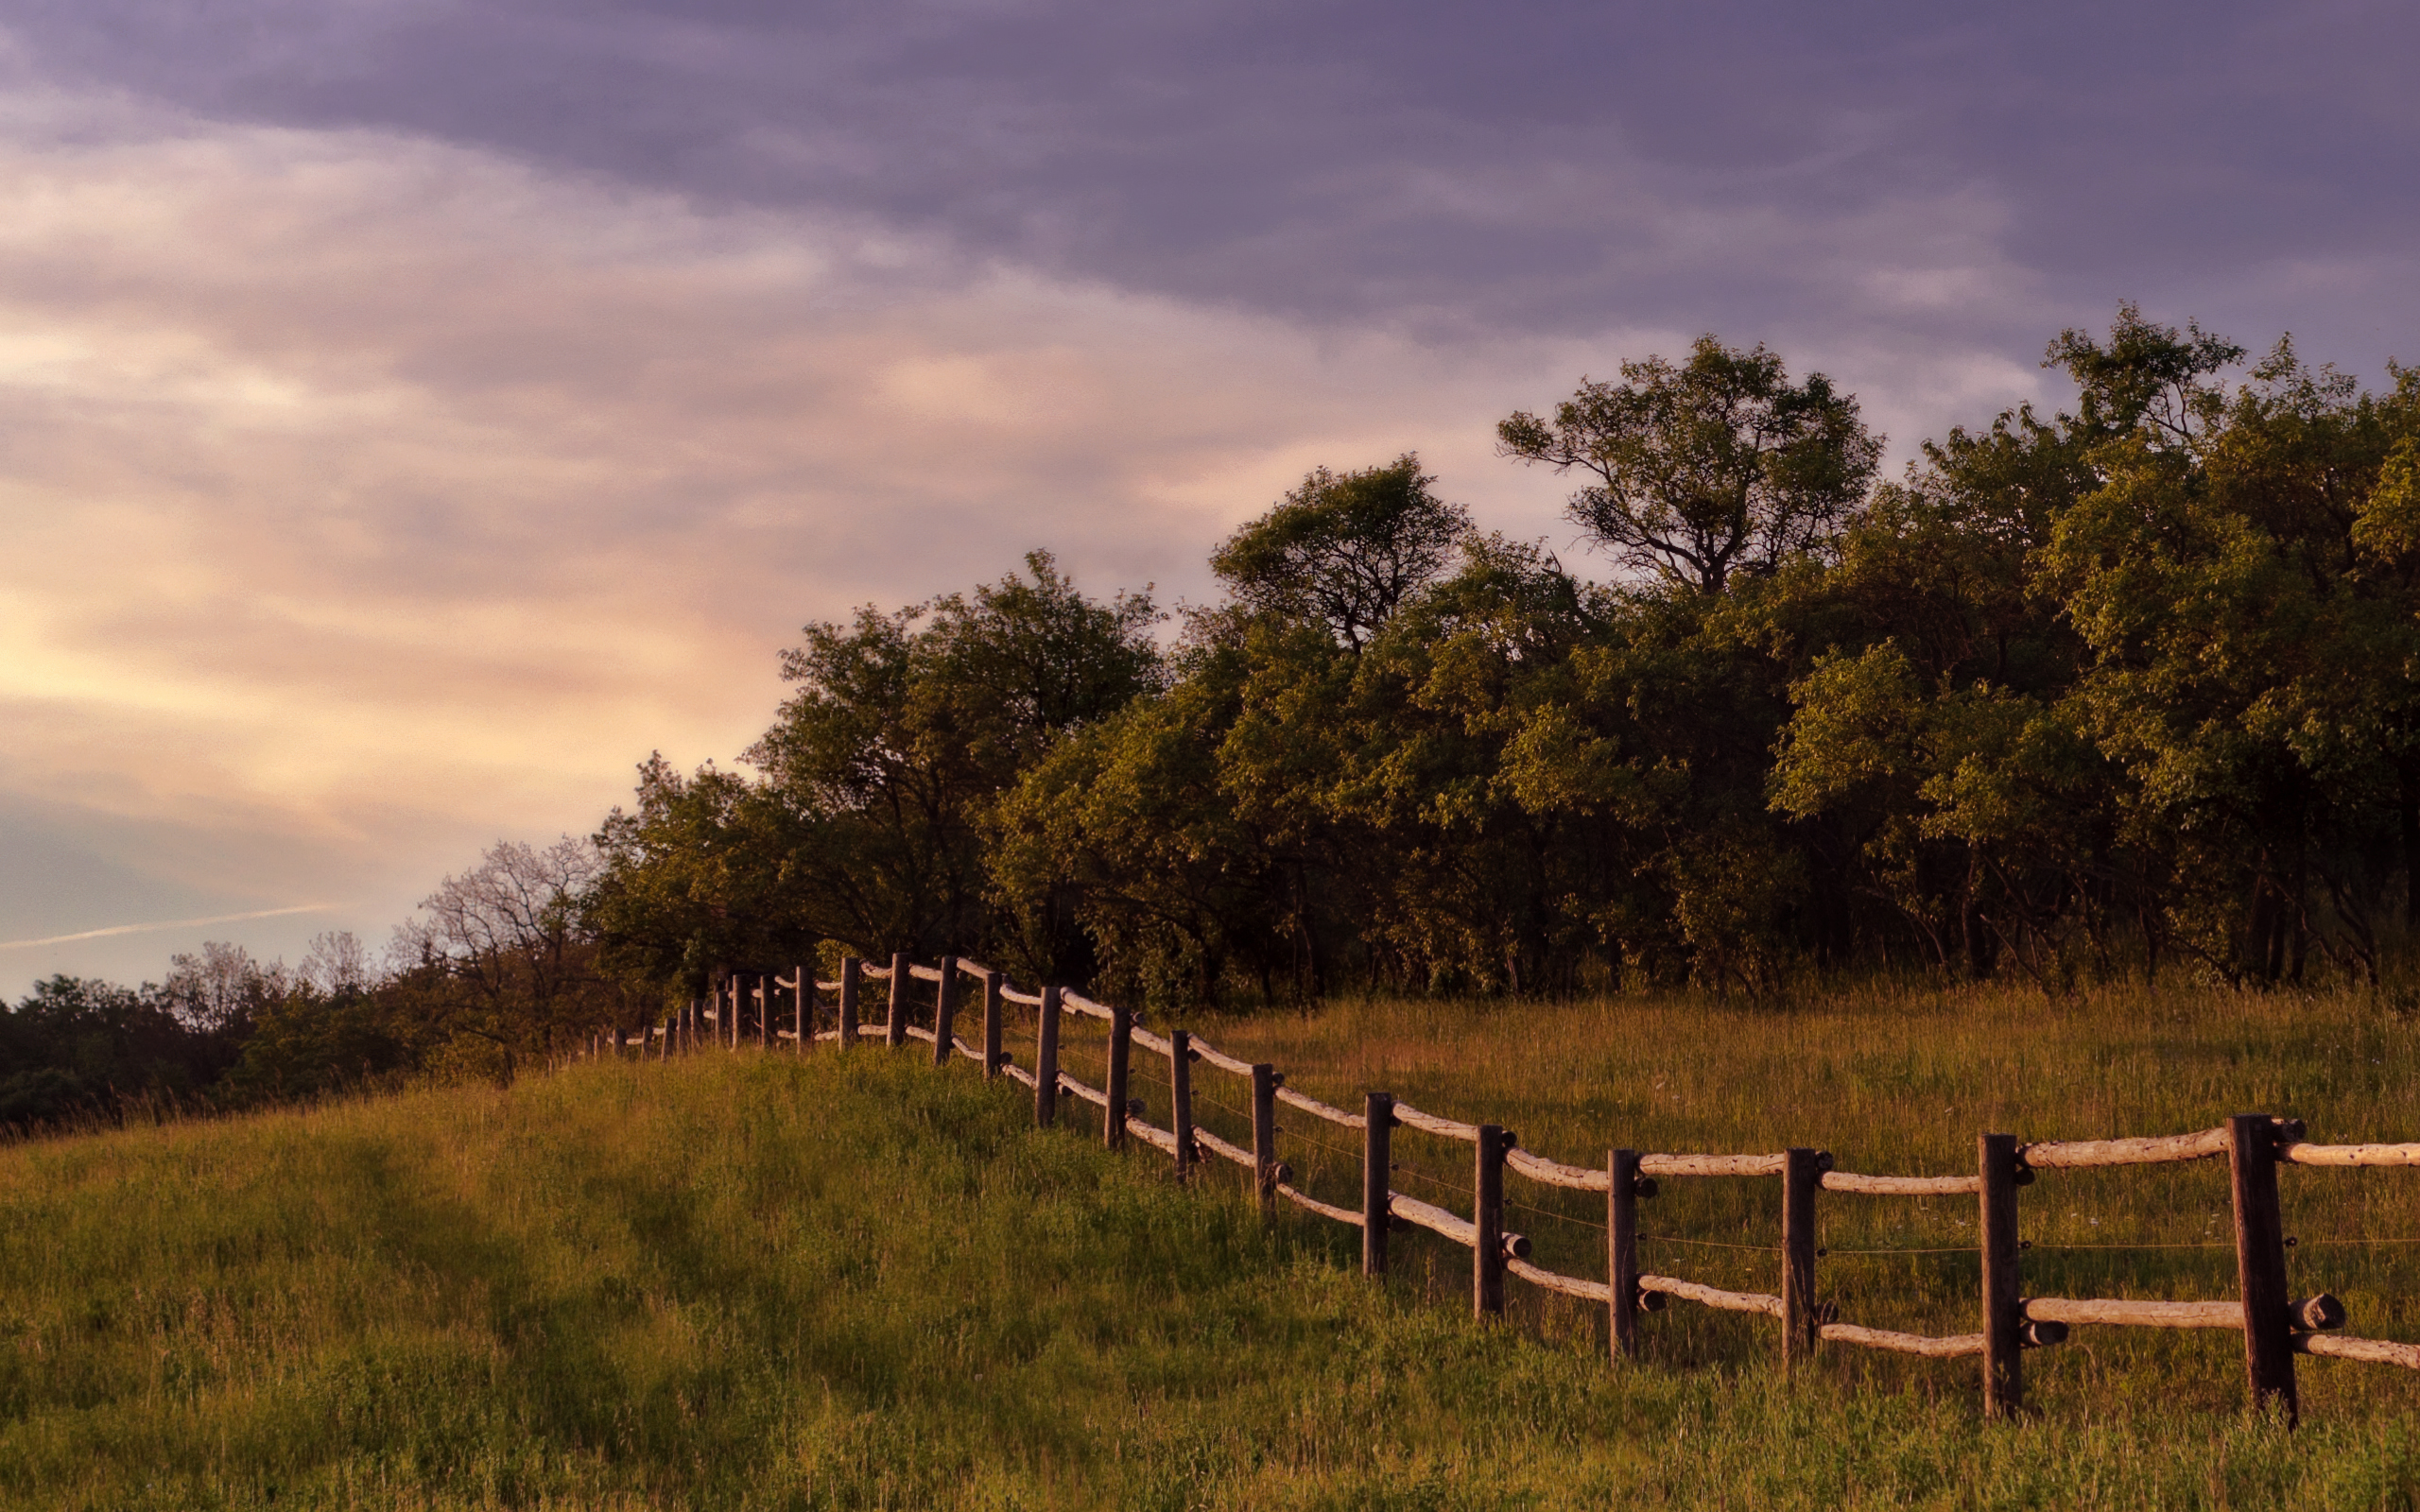 Animated Girly Wallpapers Meadow Trees Fence Dusky Sky Wallpapers Meadow Trees